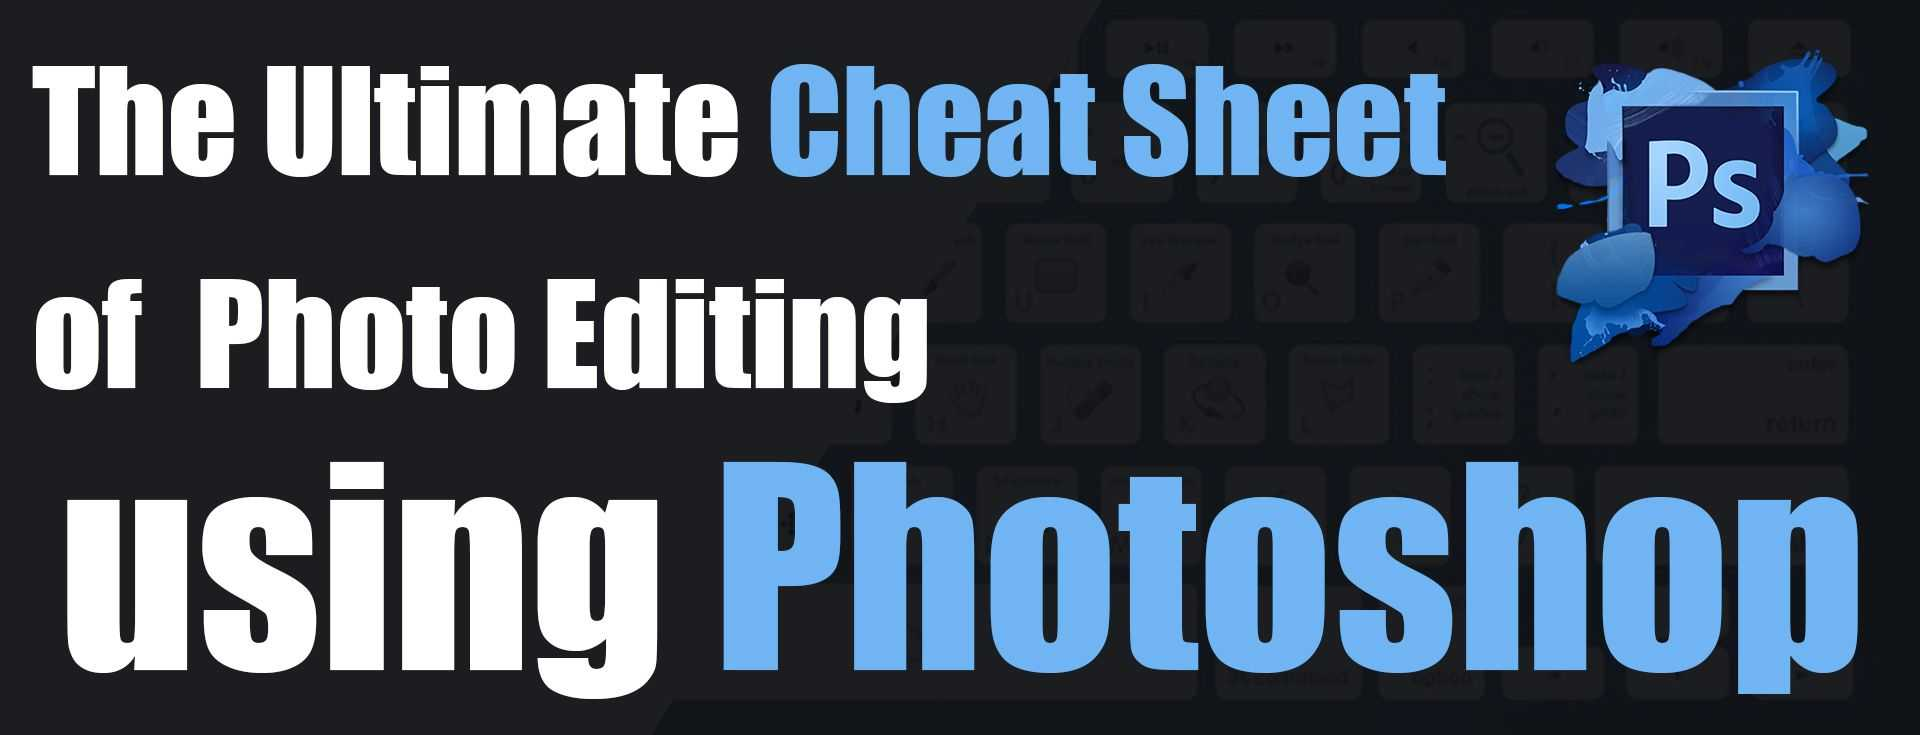 photo editing cheat sheet